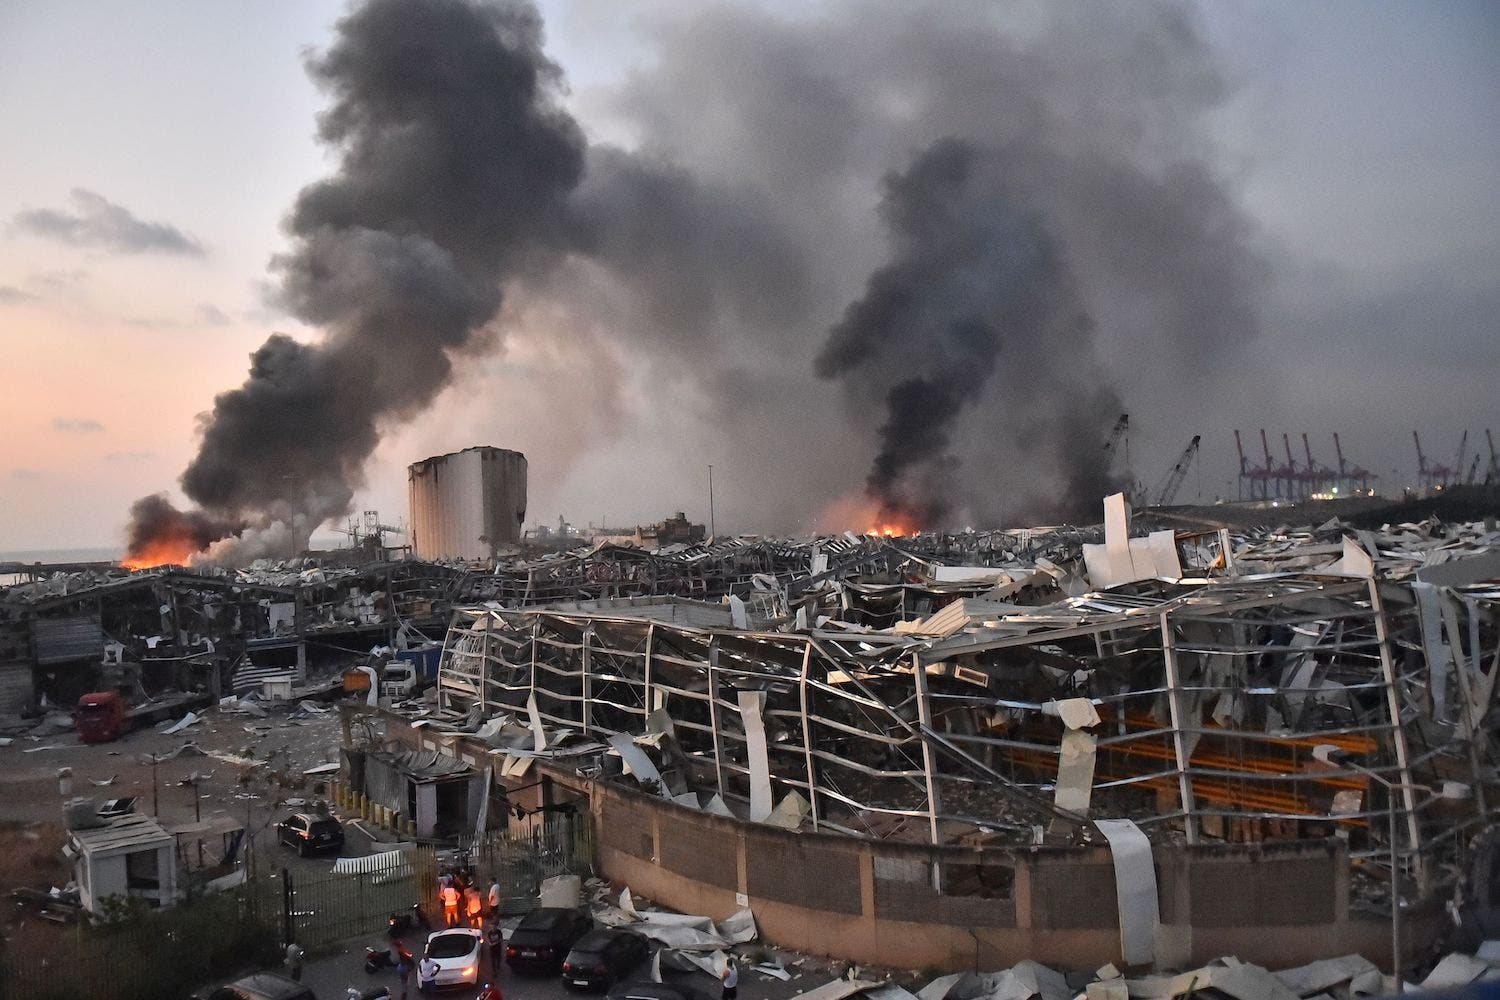 A general view of the scene of an explosion at the port of Lebanon's capital, Beirut, on Aug. 4. (AFP)